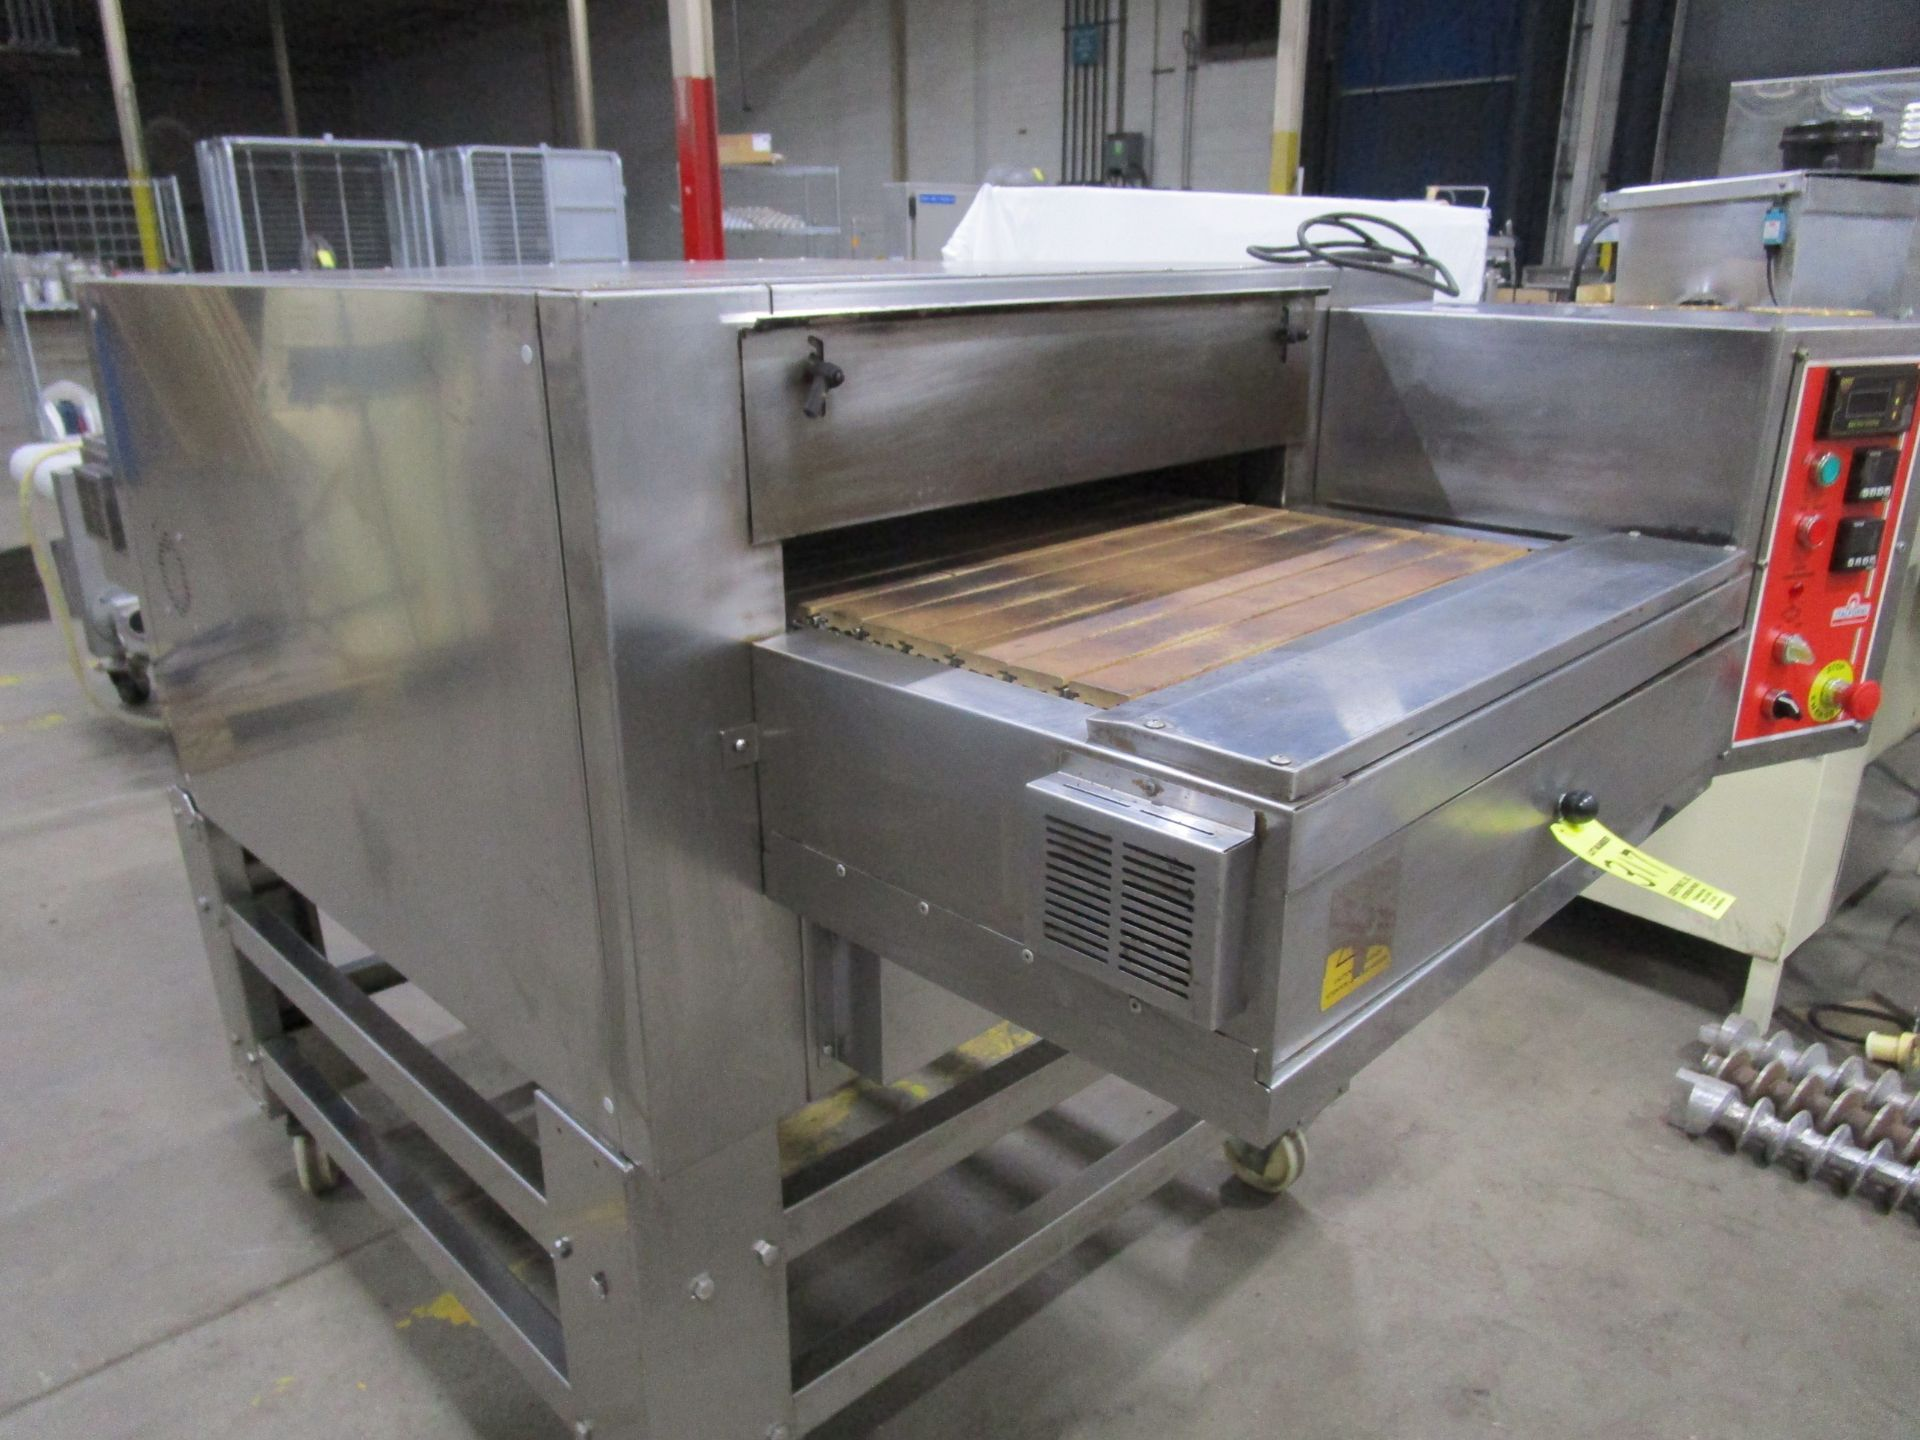 "Lot 317 - (1) 2014 Italforni Pesaro Model TSBN-GAS Pizza Oven, s/n 37033, 24"" Belt 